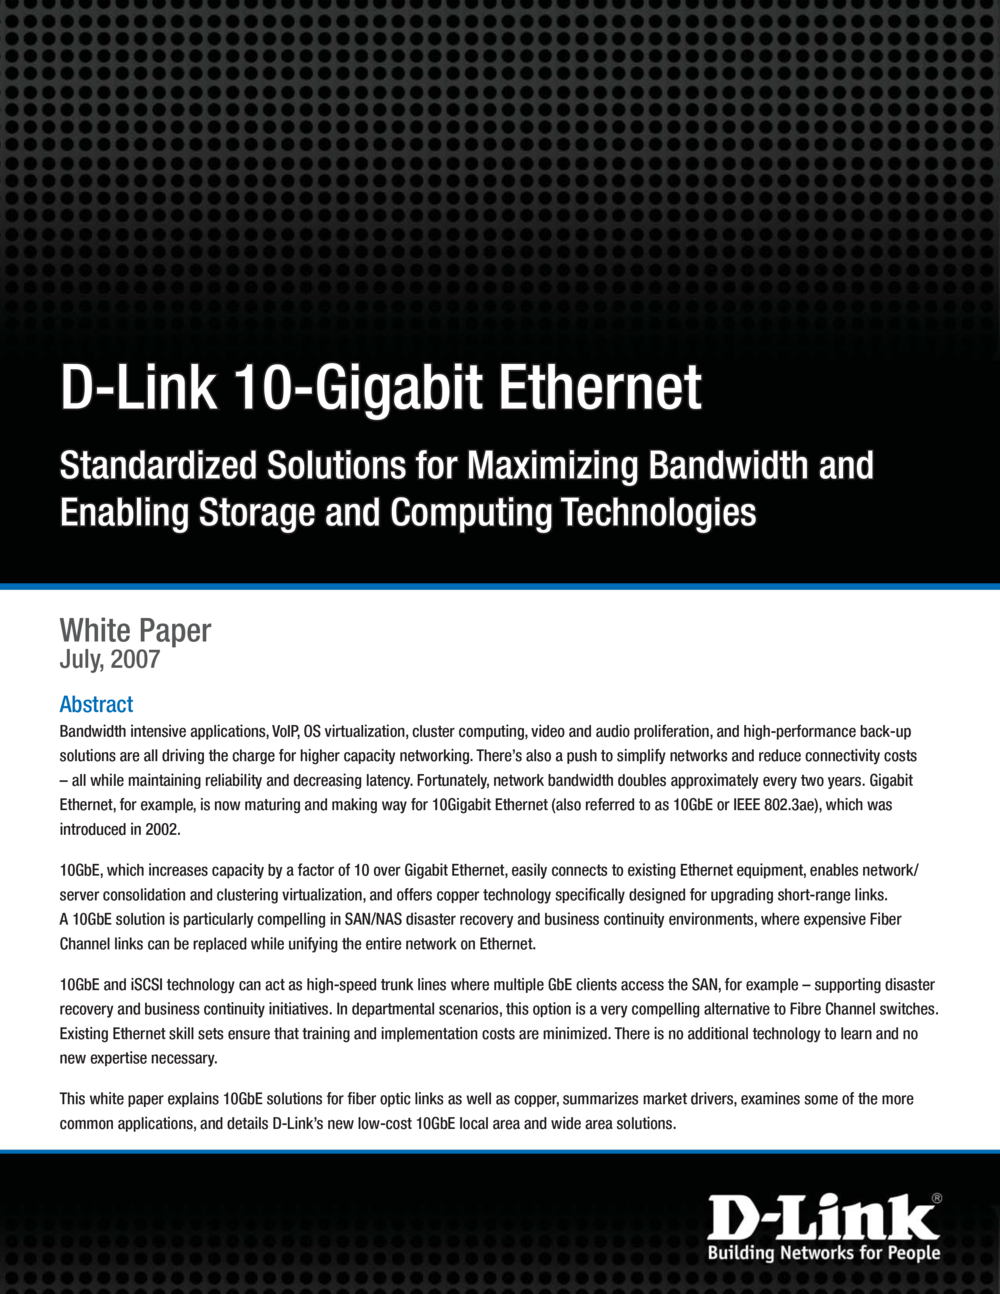 D-Link_10GB_Ethernet_White_Paper-1.png